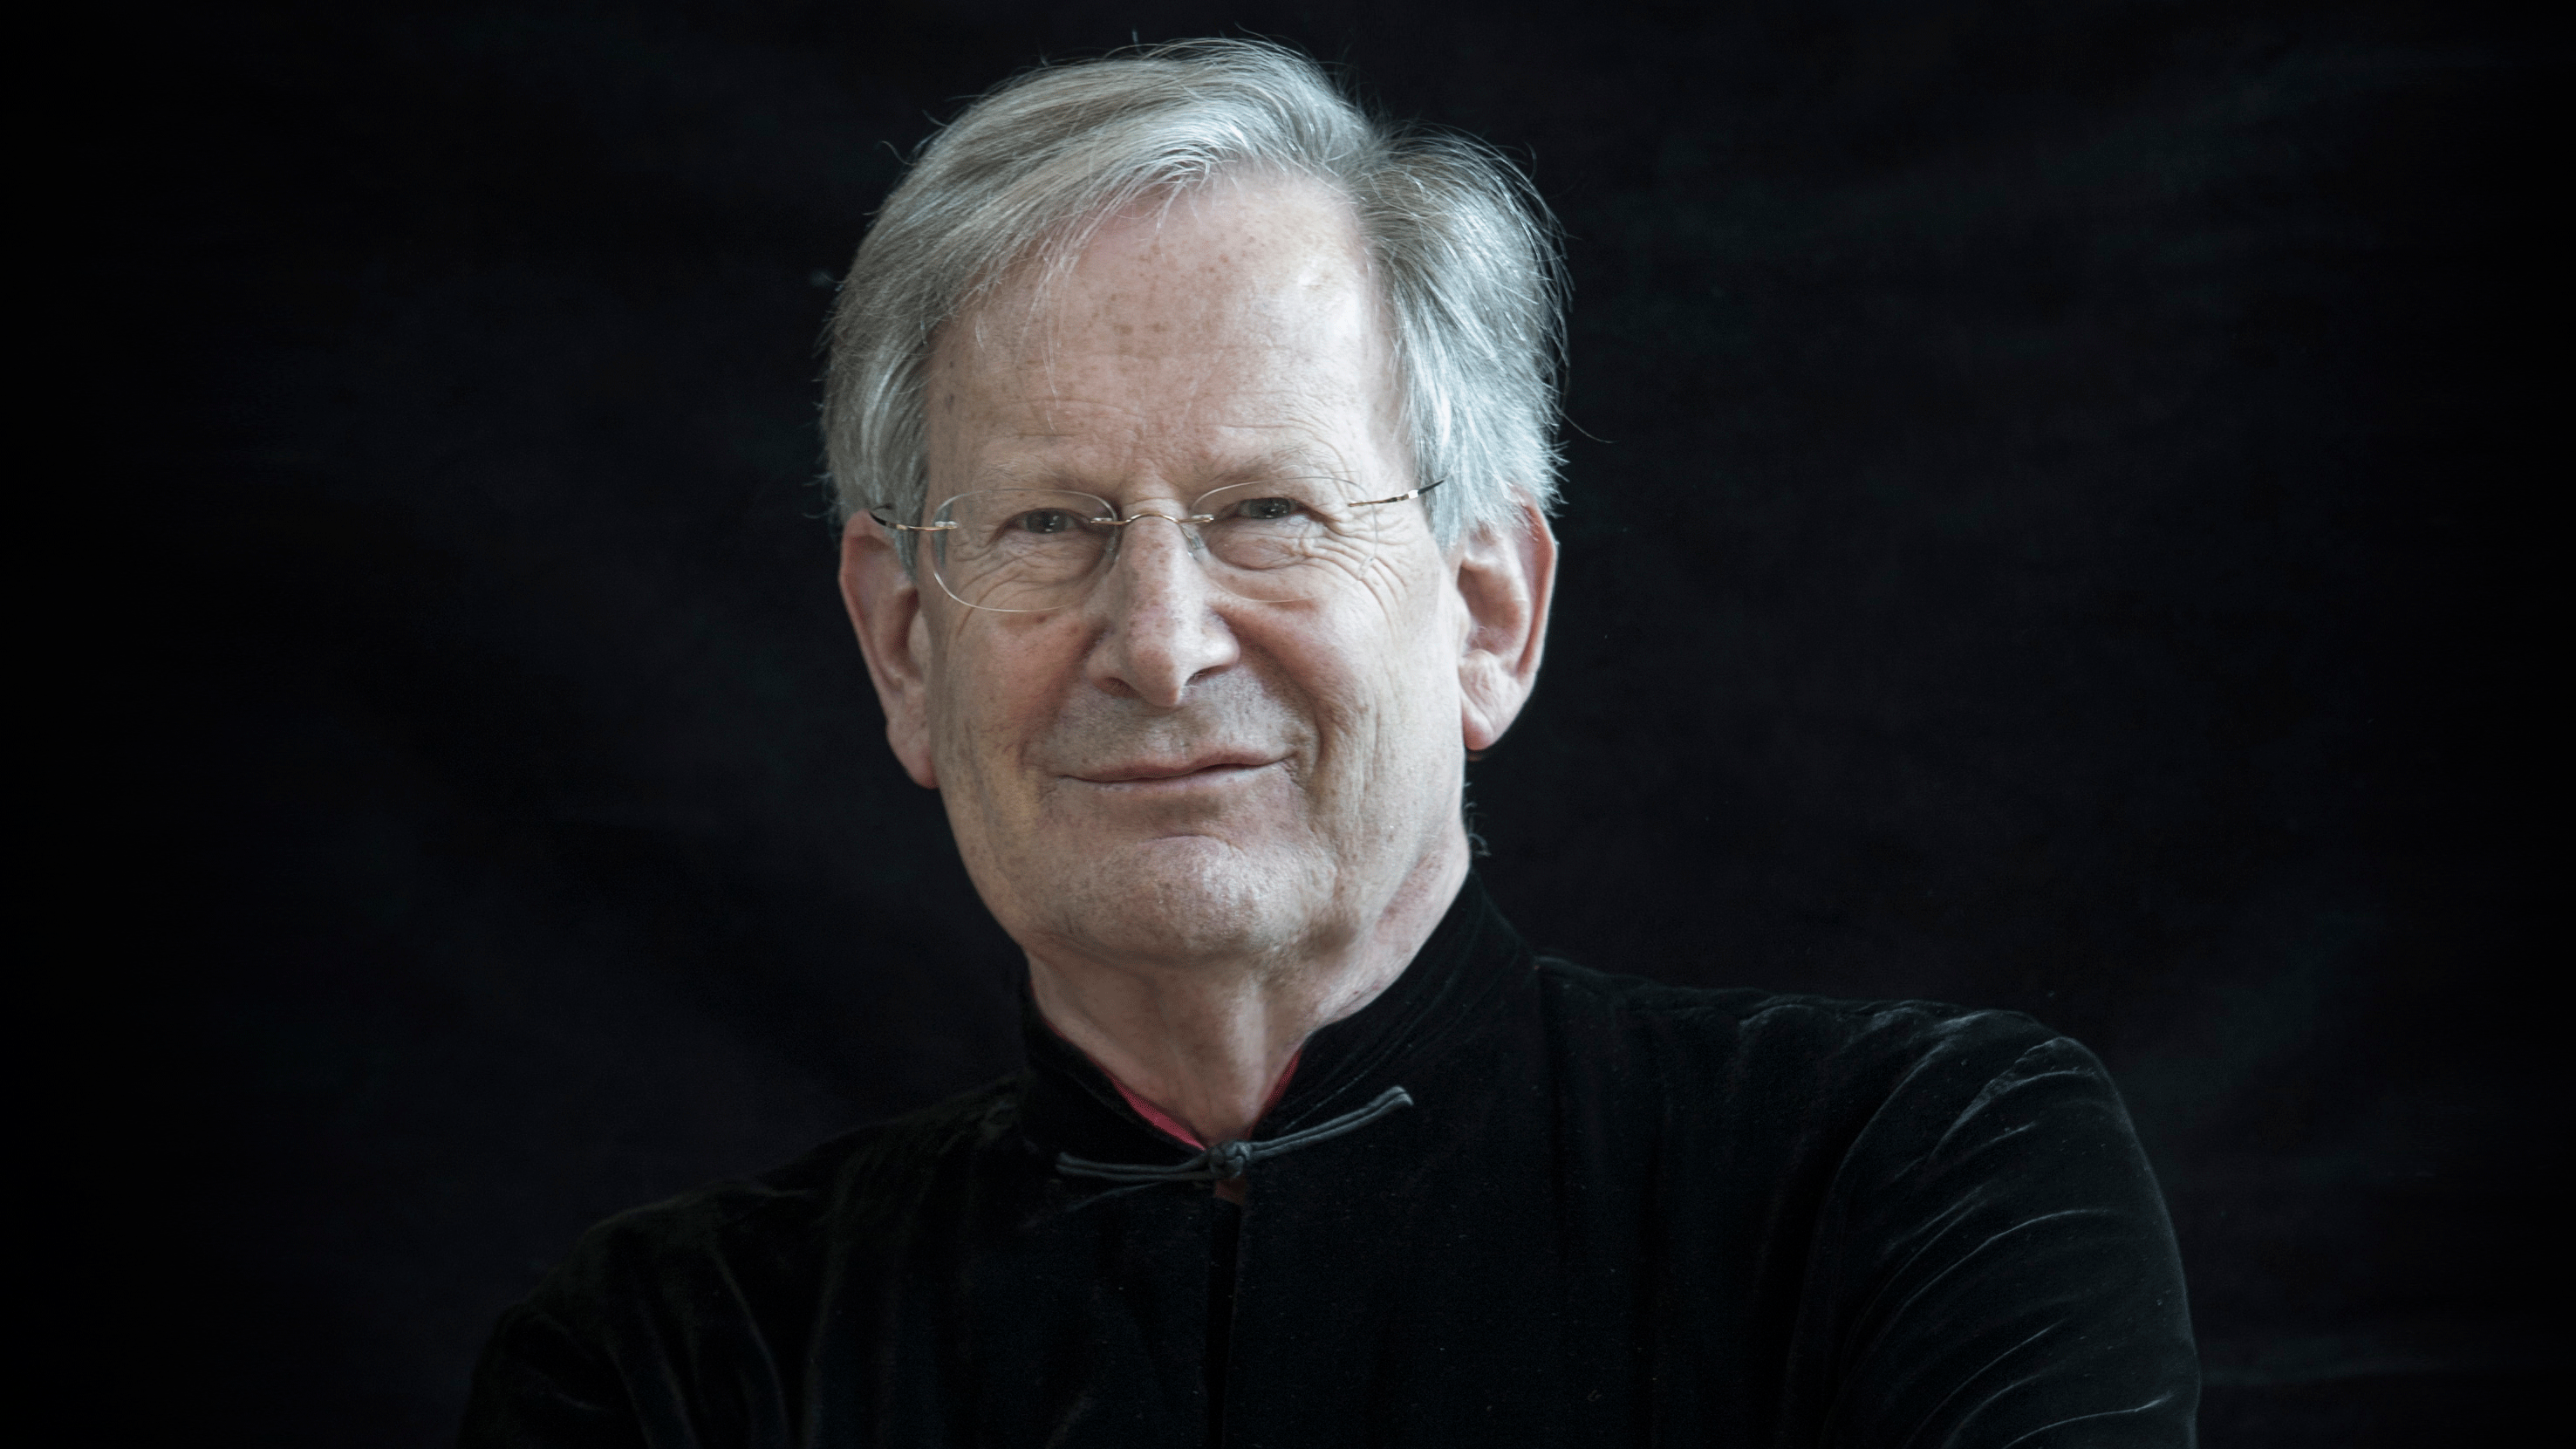 Sir John Eliot Gardiner conducts Schumann and Berlioz – With Ann Hallenberg